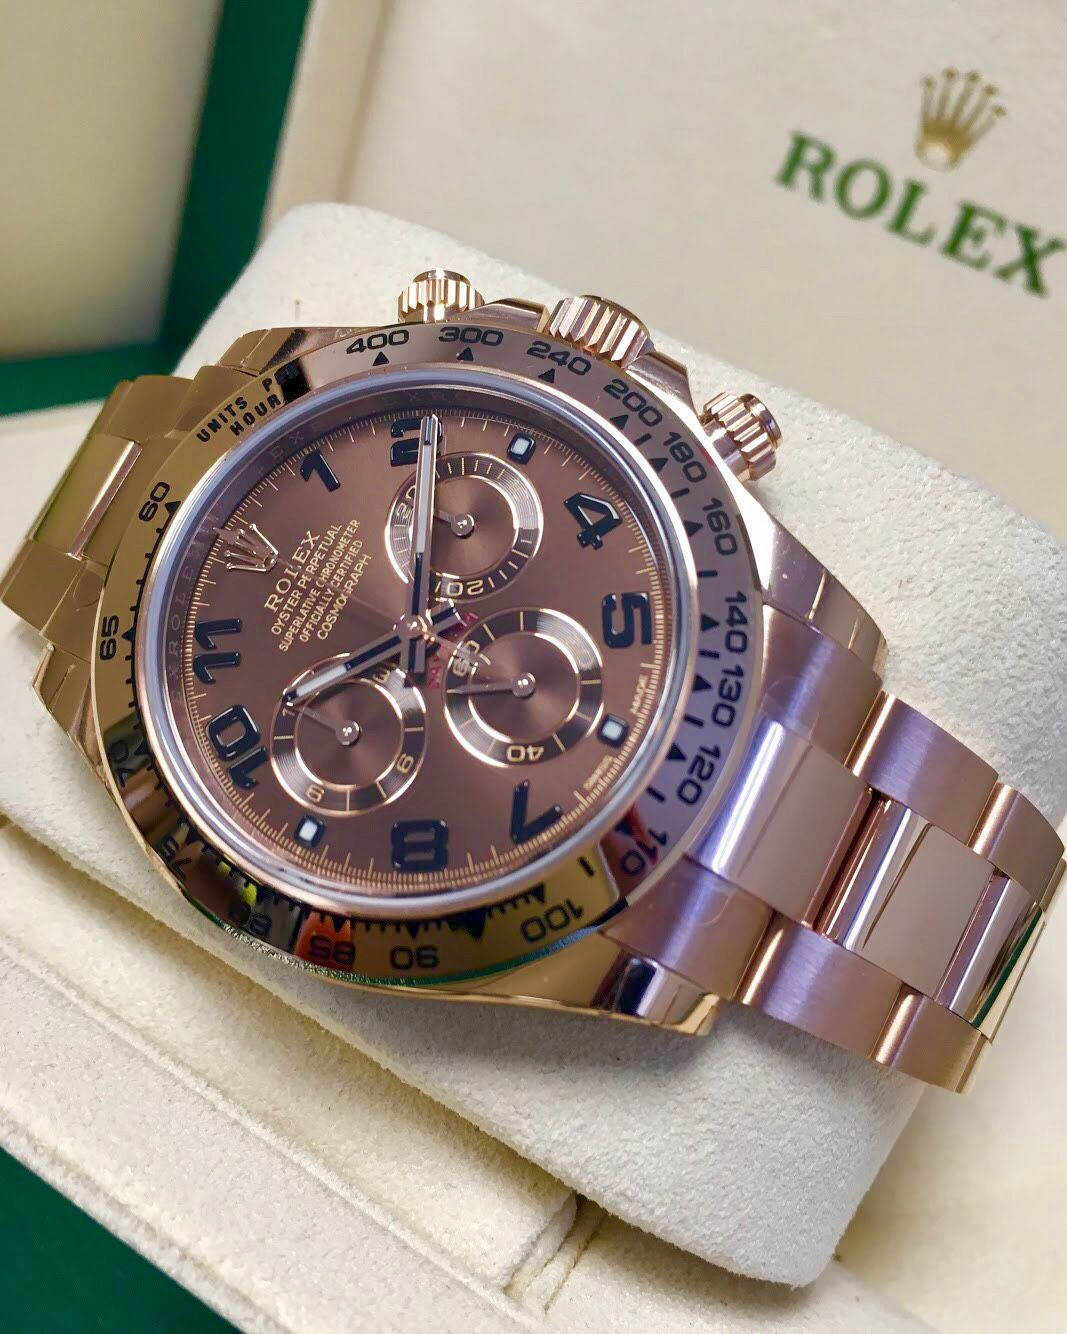 Rolex Daytona Rose Gold Chocolate Dial 116505 Sale! Up to 75% OFF! Shop at  Stylizio for women s and men s designer handbags 84d6cf4d5b